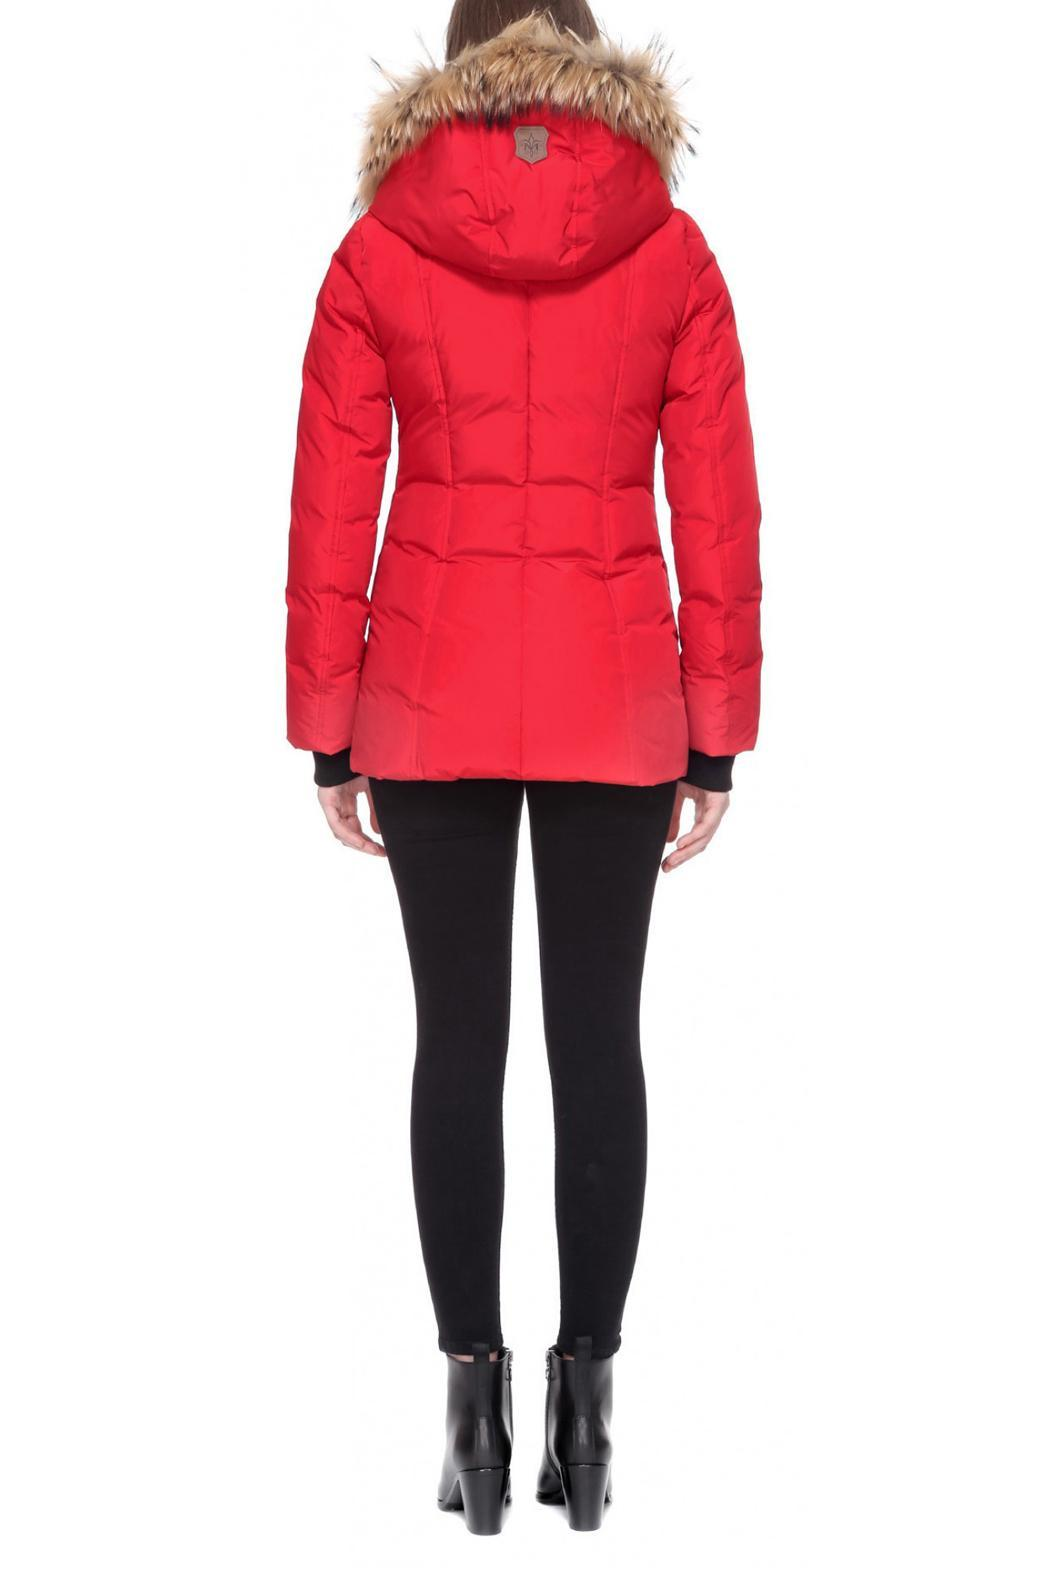 Mackage Adali Red Coat - Back Cropped Image